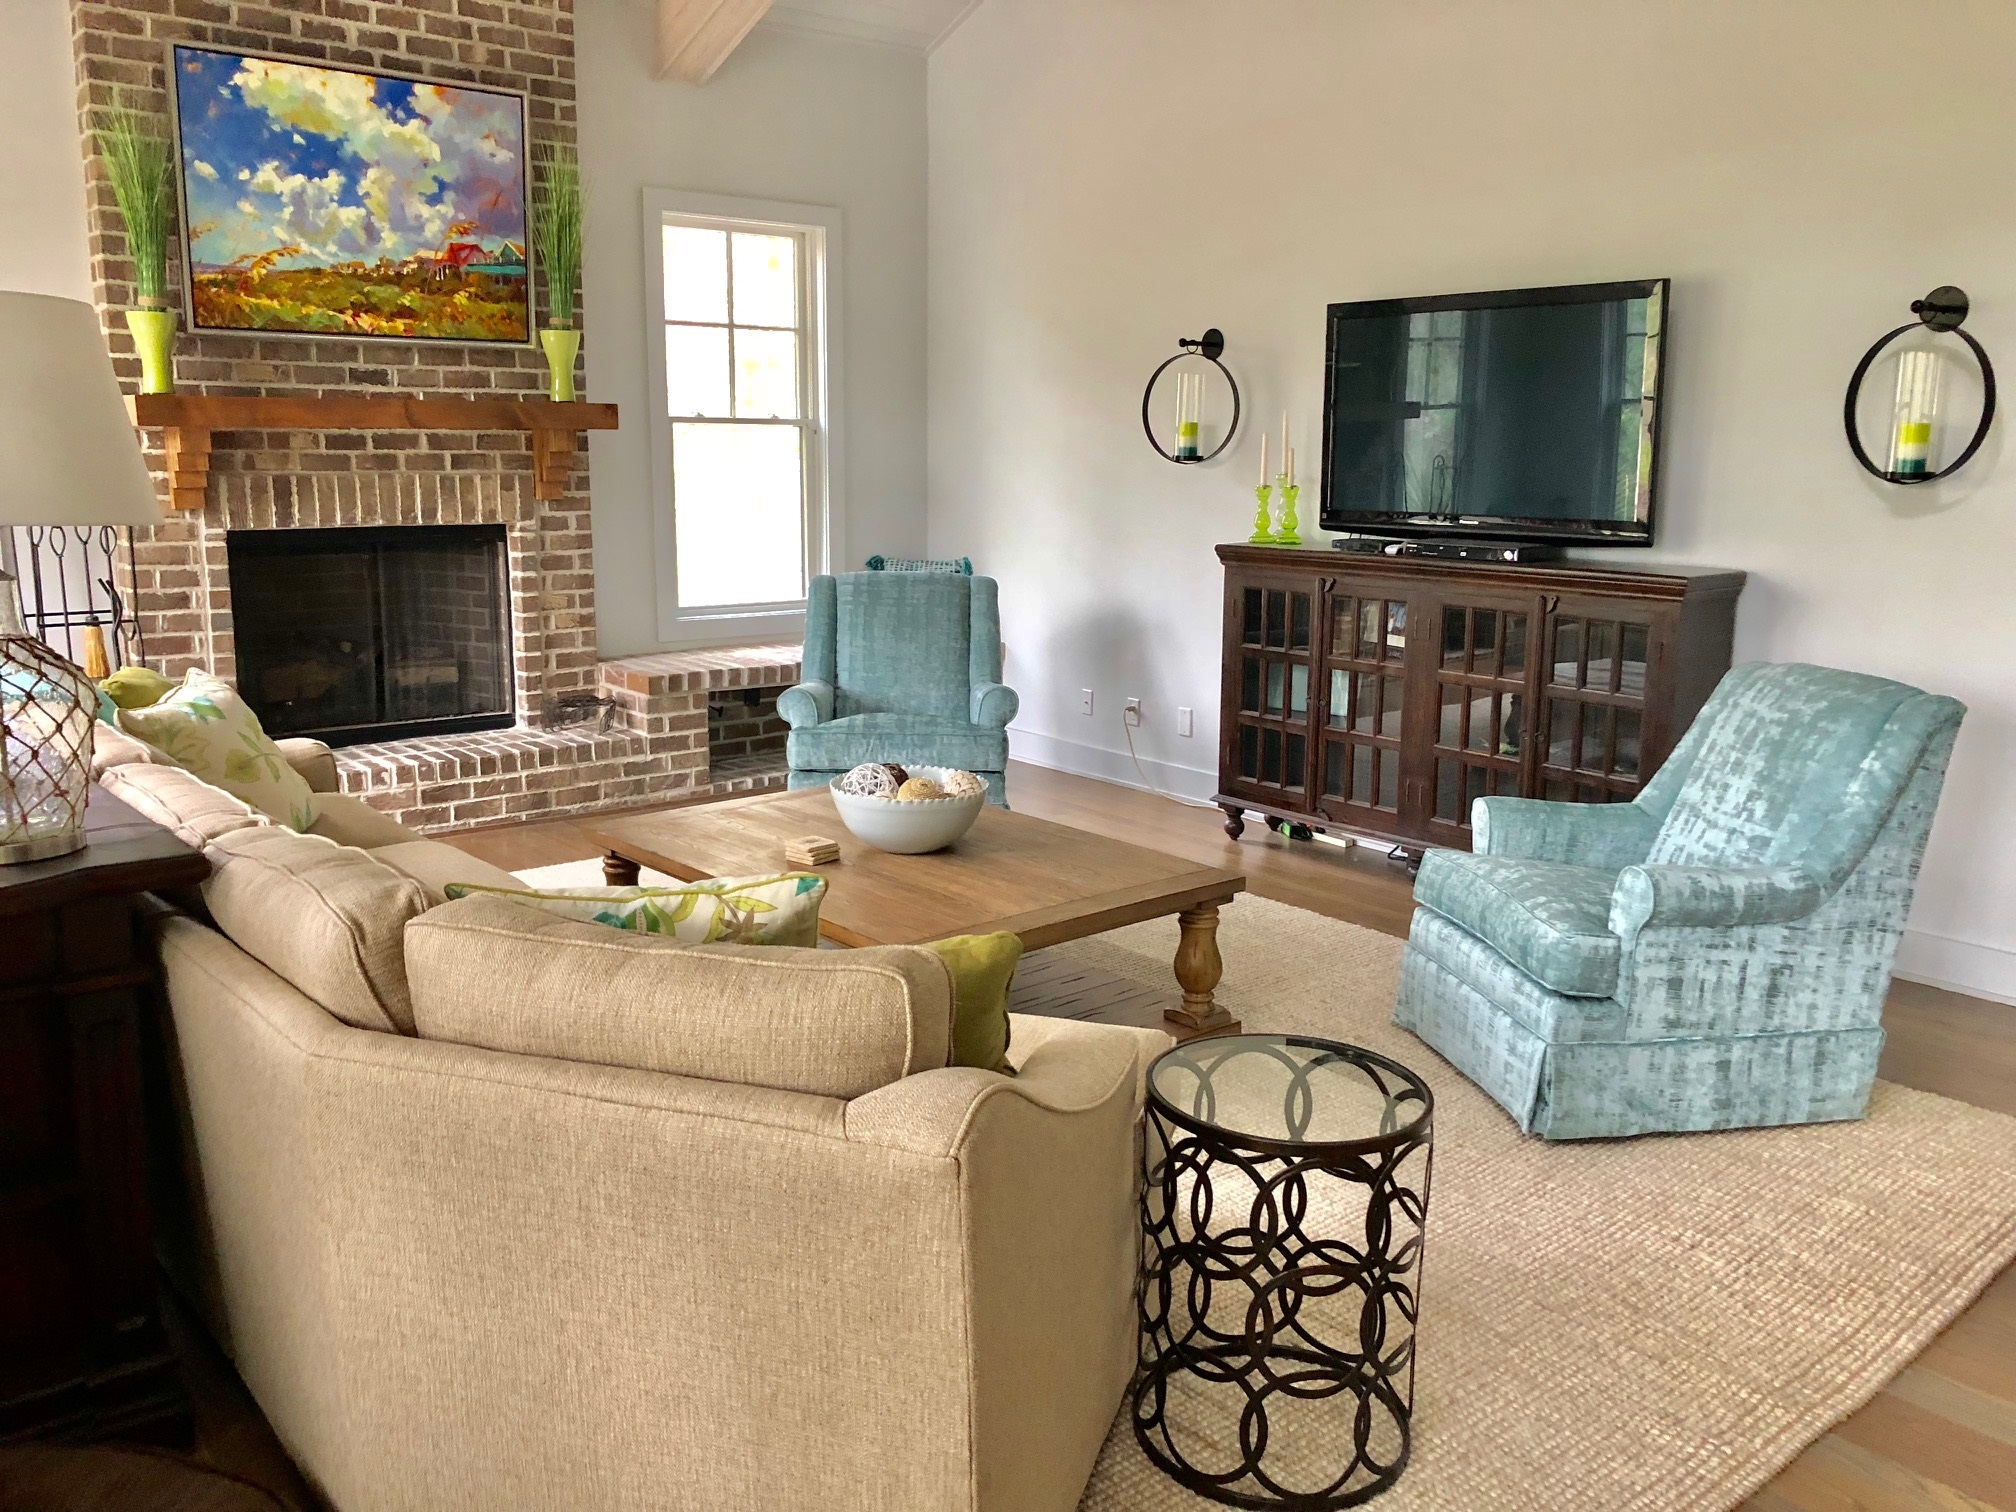 Gather in the great room for entertaining by the beautiful brick fireplace or watch a favorite on the large HD flatscreen.